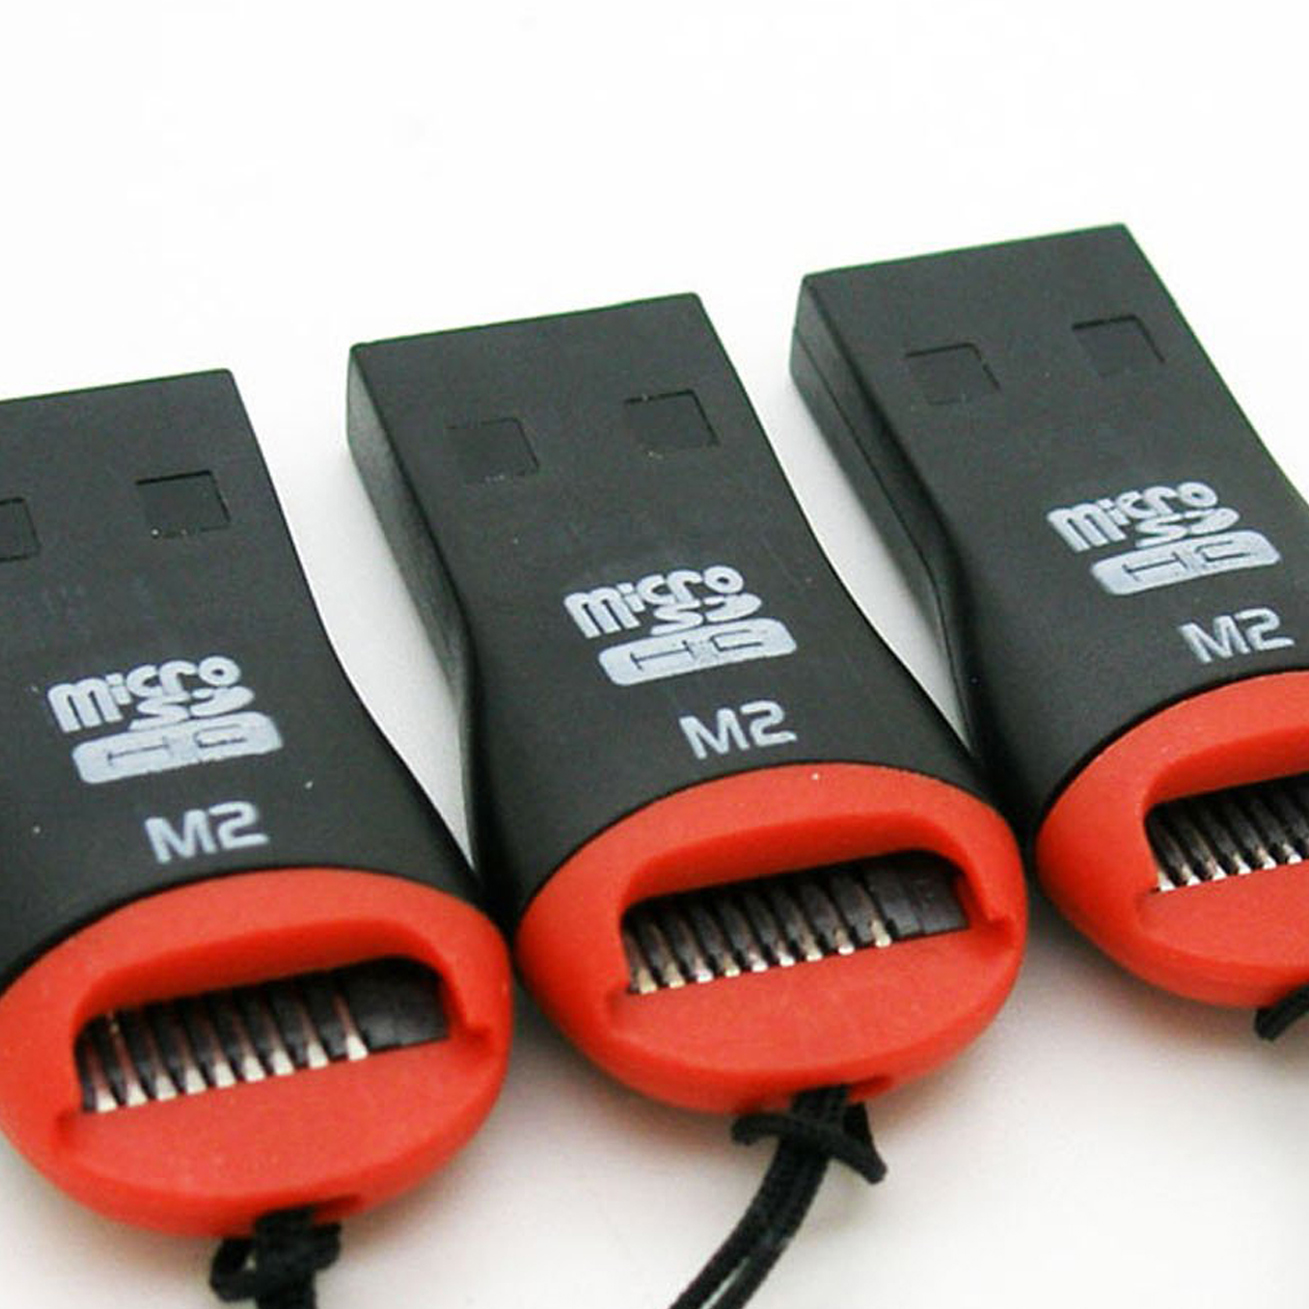 3 X USB 20 Micro SD Card Adapter Reader Writer SDHC MMC